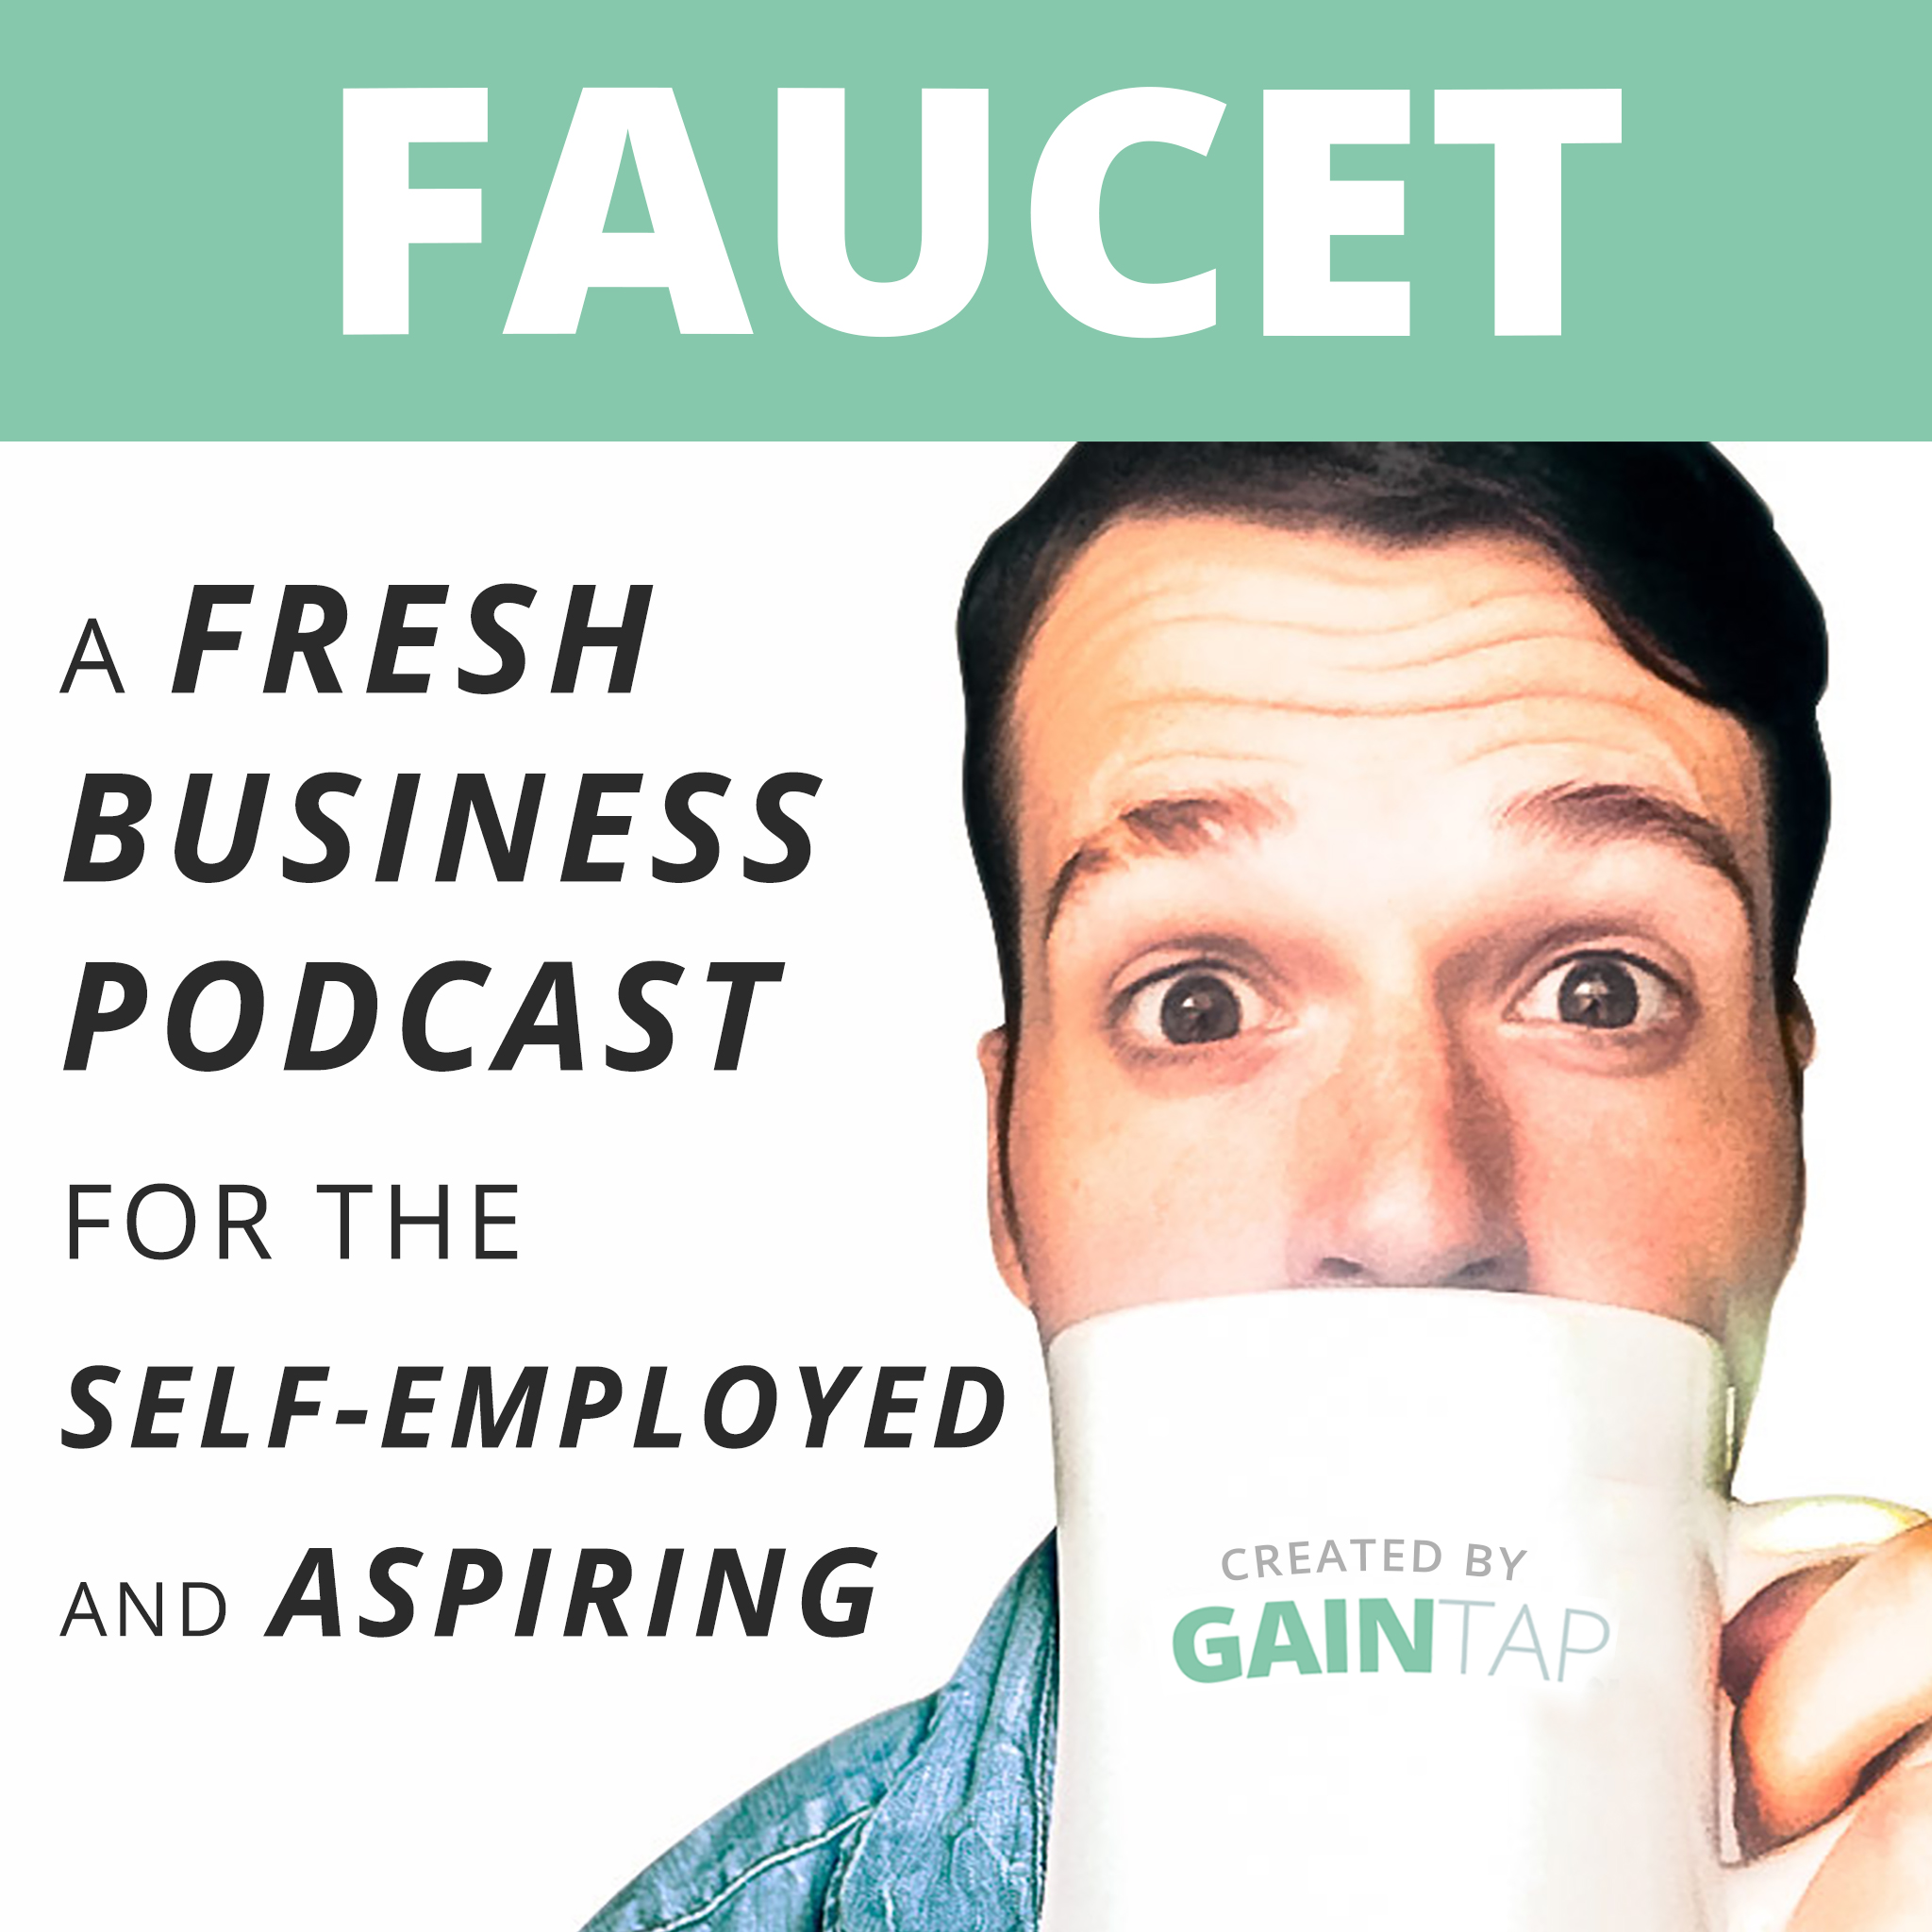 Faucet: A Fresh Business Podcast